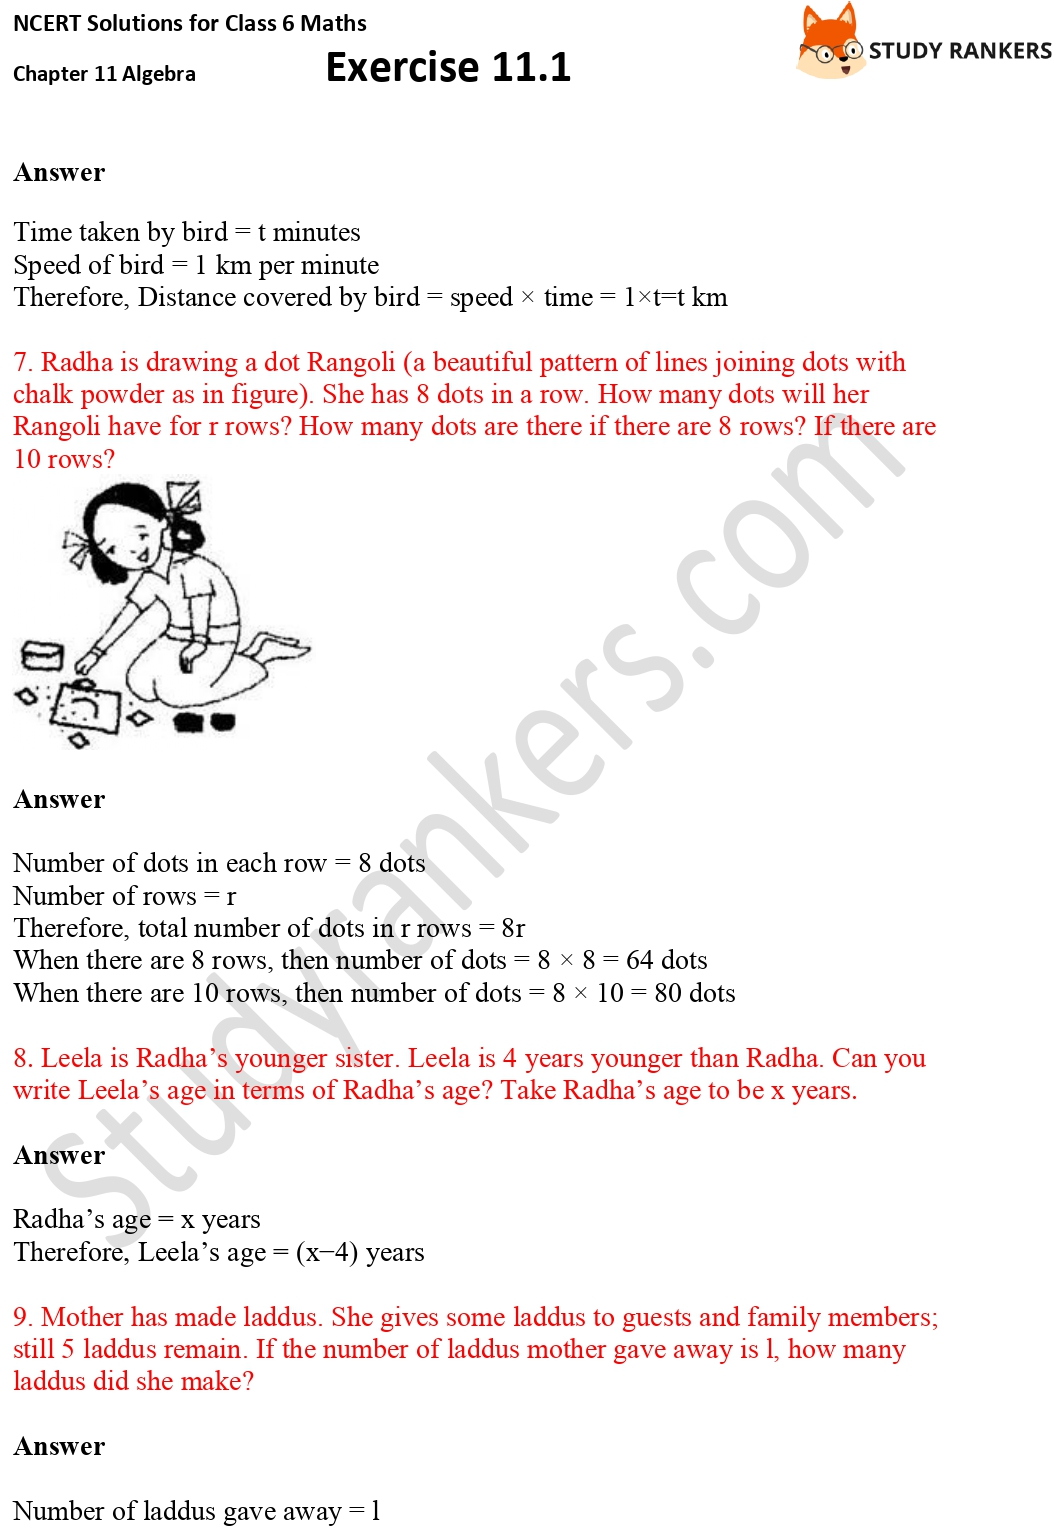 NCERT Solutions for Class 6 Maths Chapter 11 Algebra Exercise 11.1 Part 3